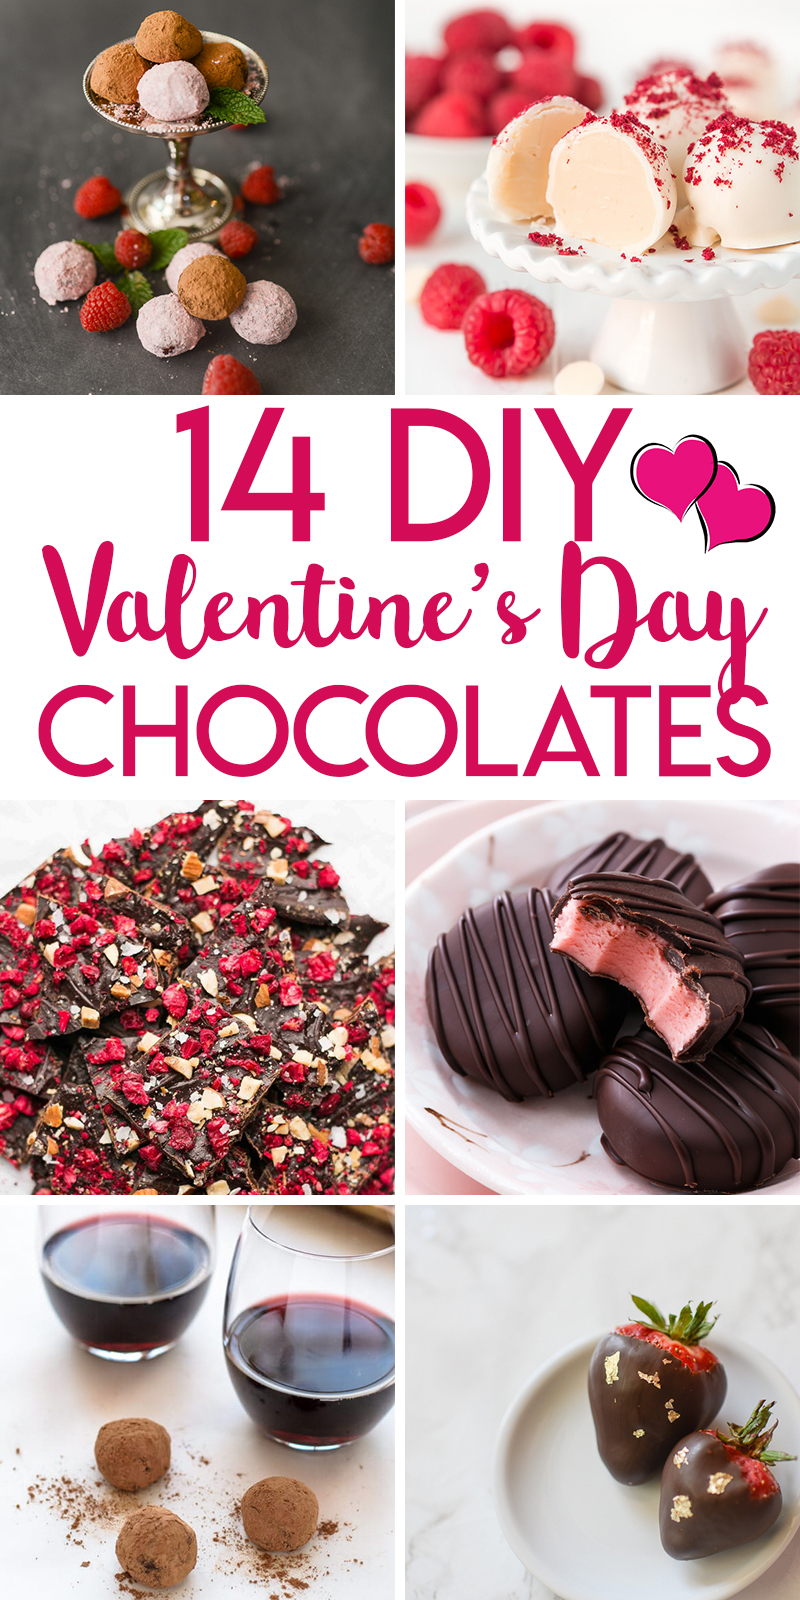 14 delicious chocolates to make for Valentine's Day